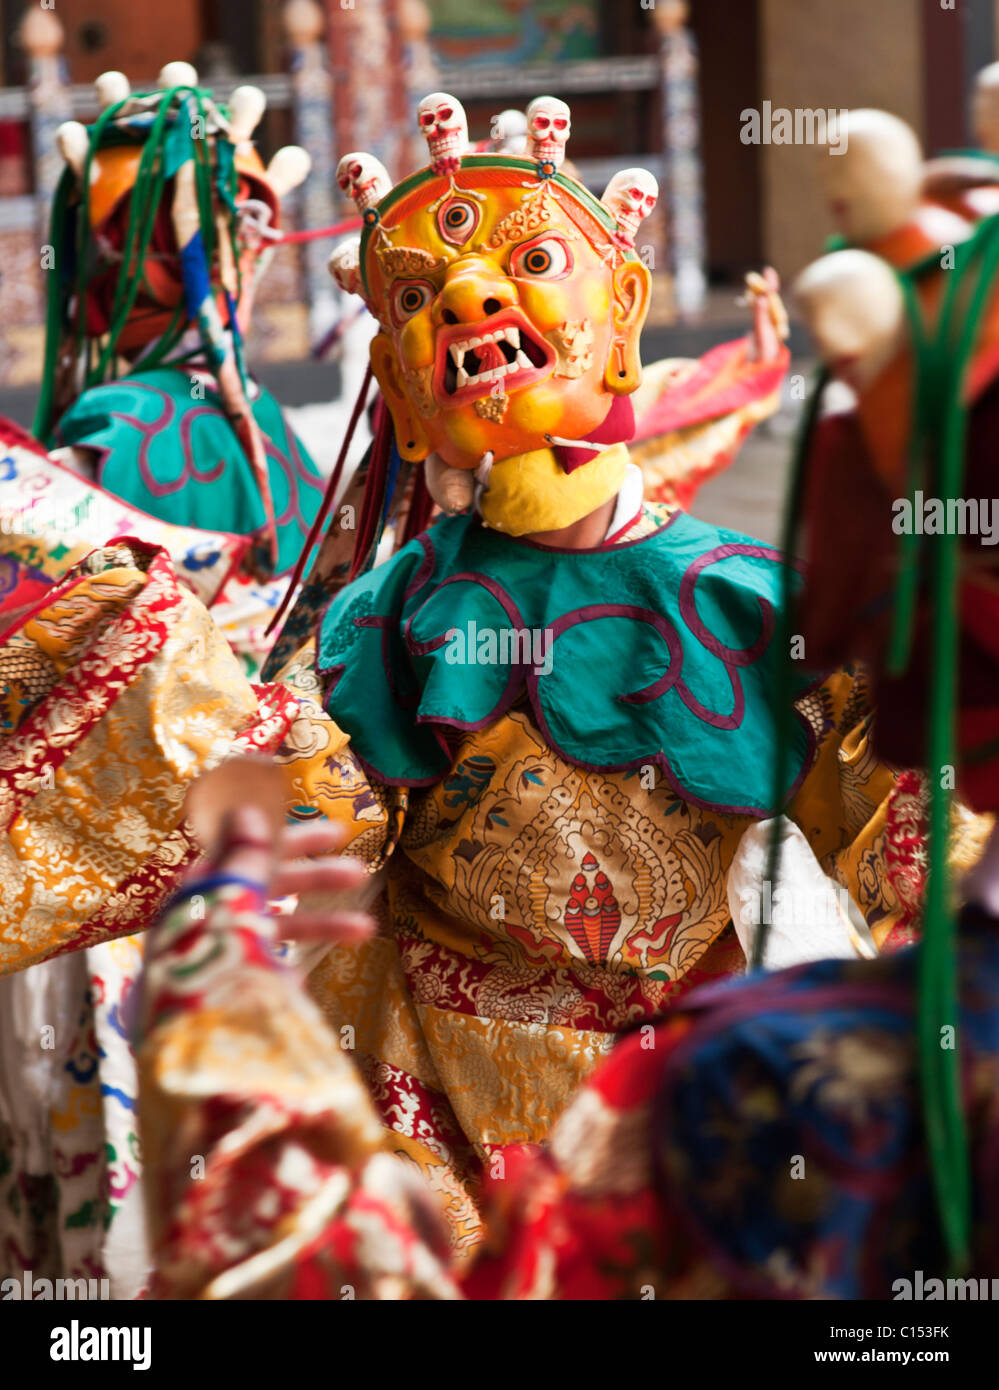 Masked and costumed monastic dancer at a festival in the Trongsa dzong in central Bhutan. - Stock Image